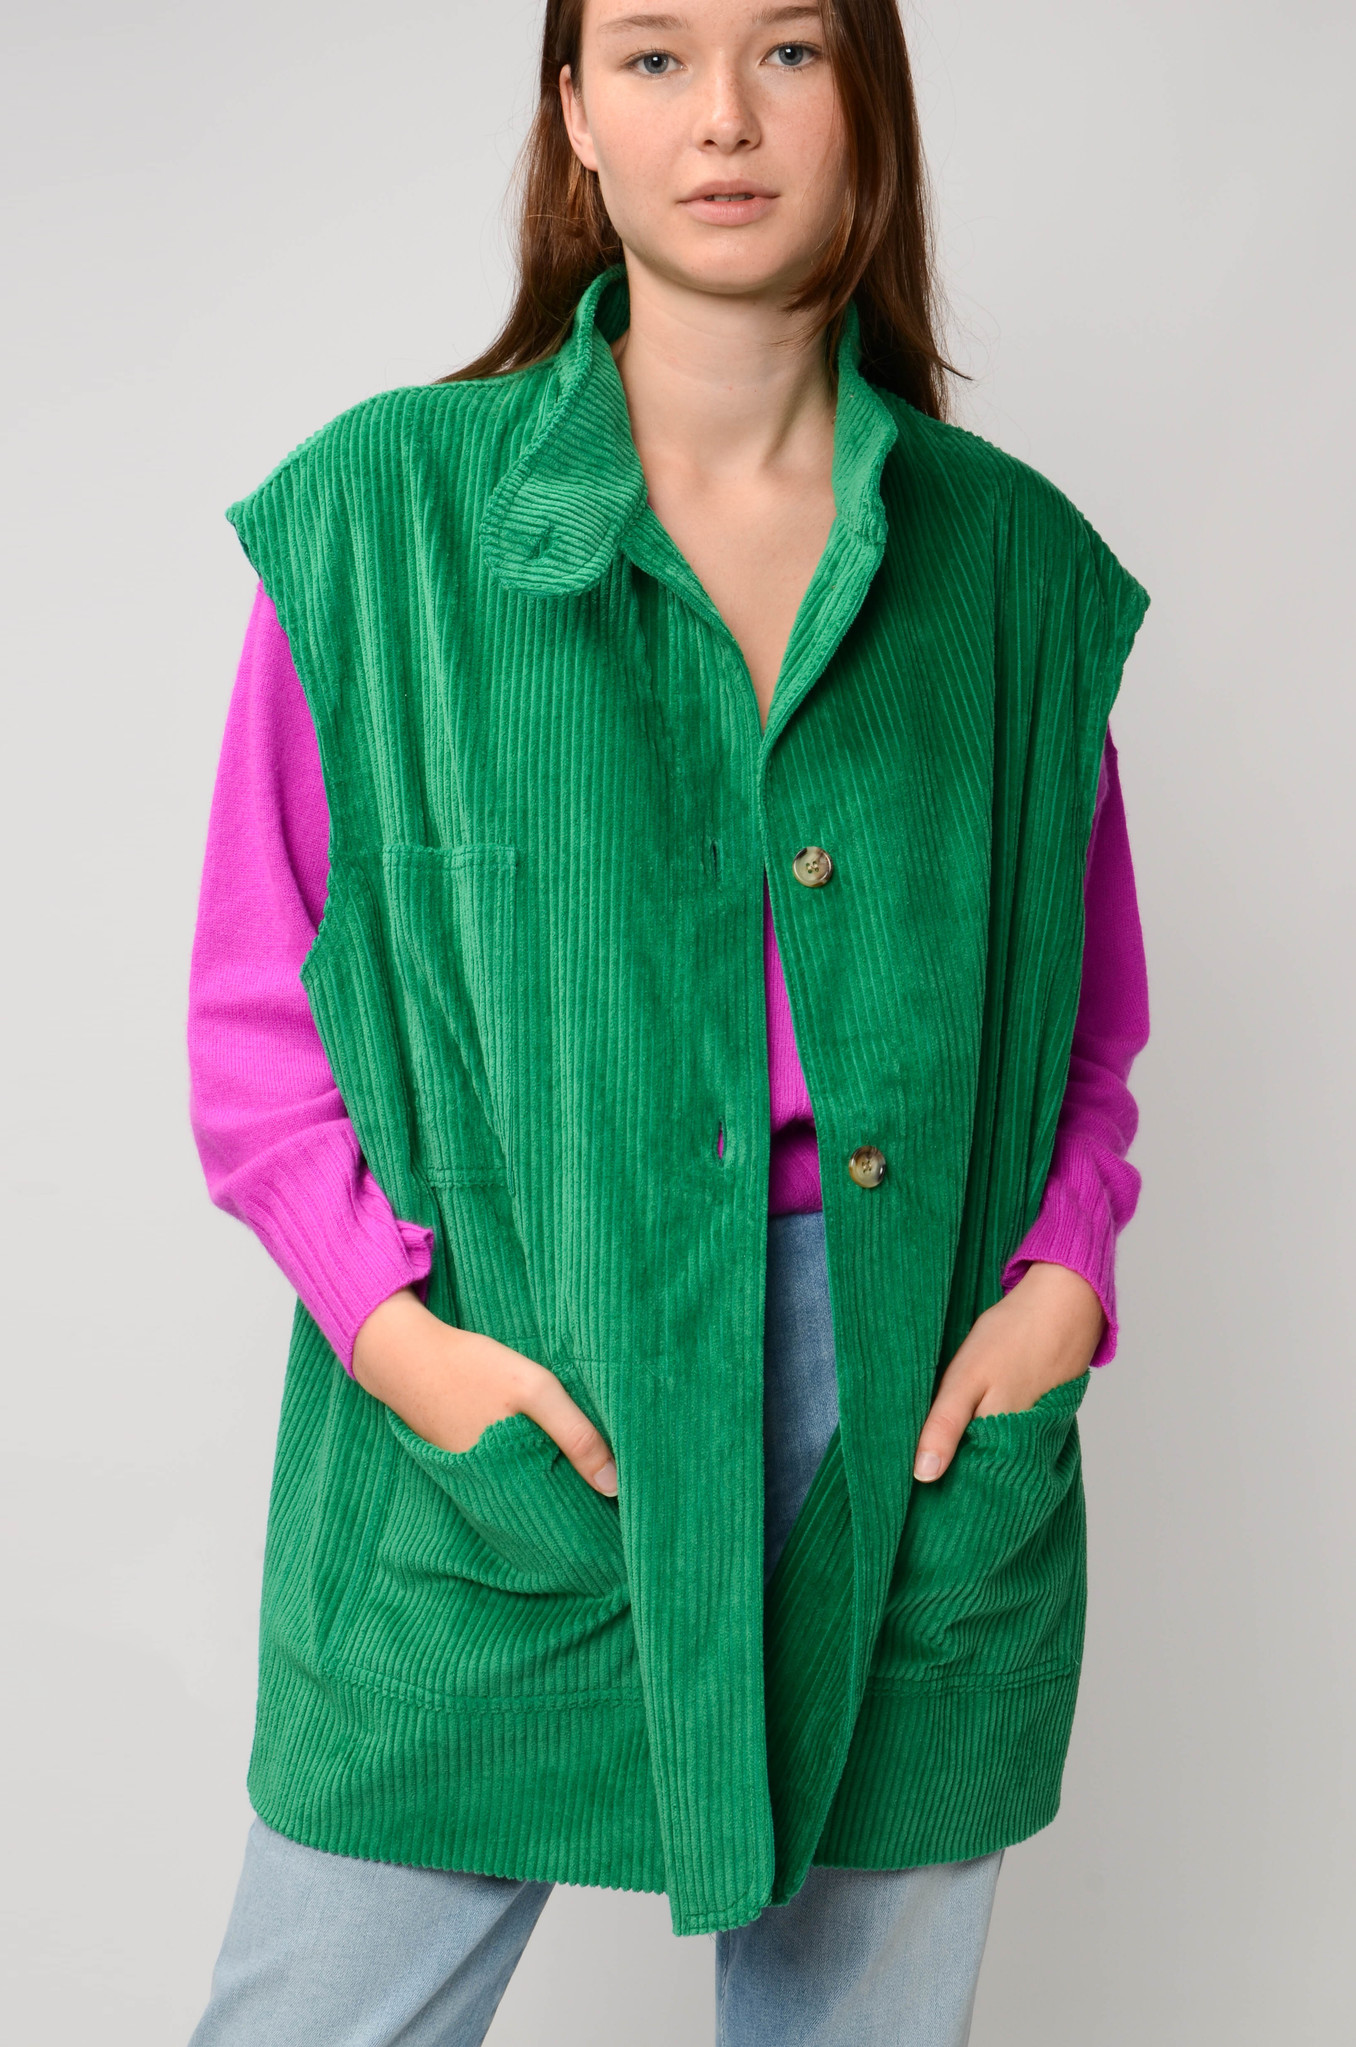 JAGGER JACK IN EMERALD GREEN-7